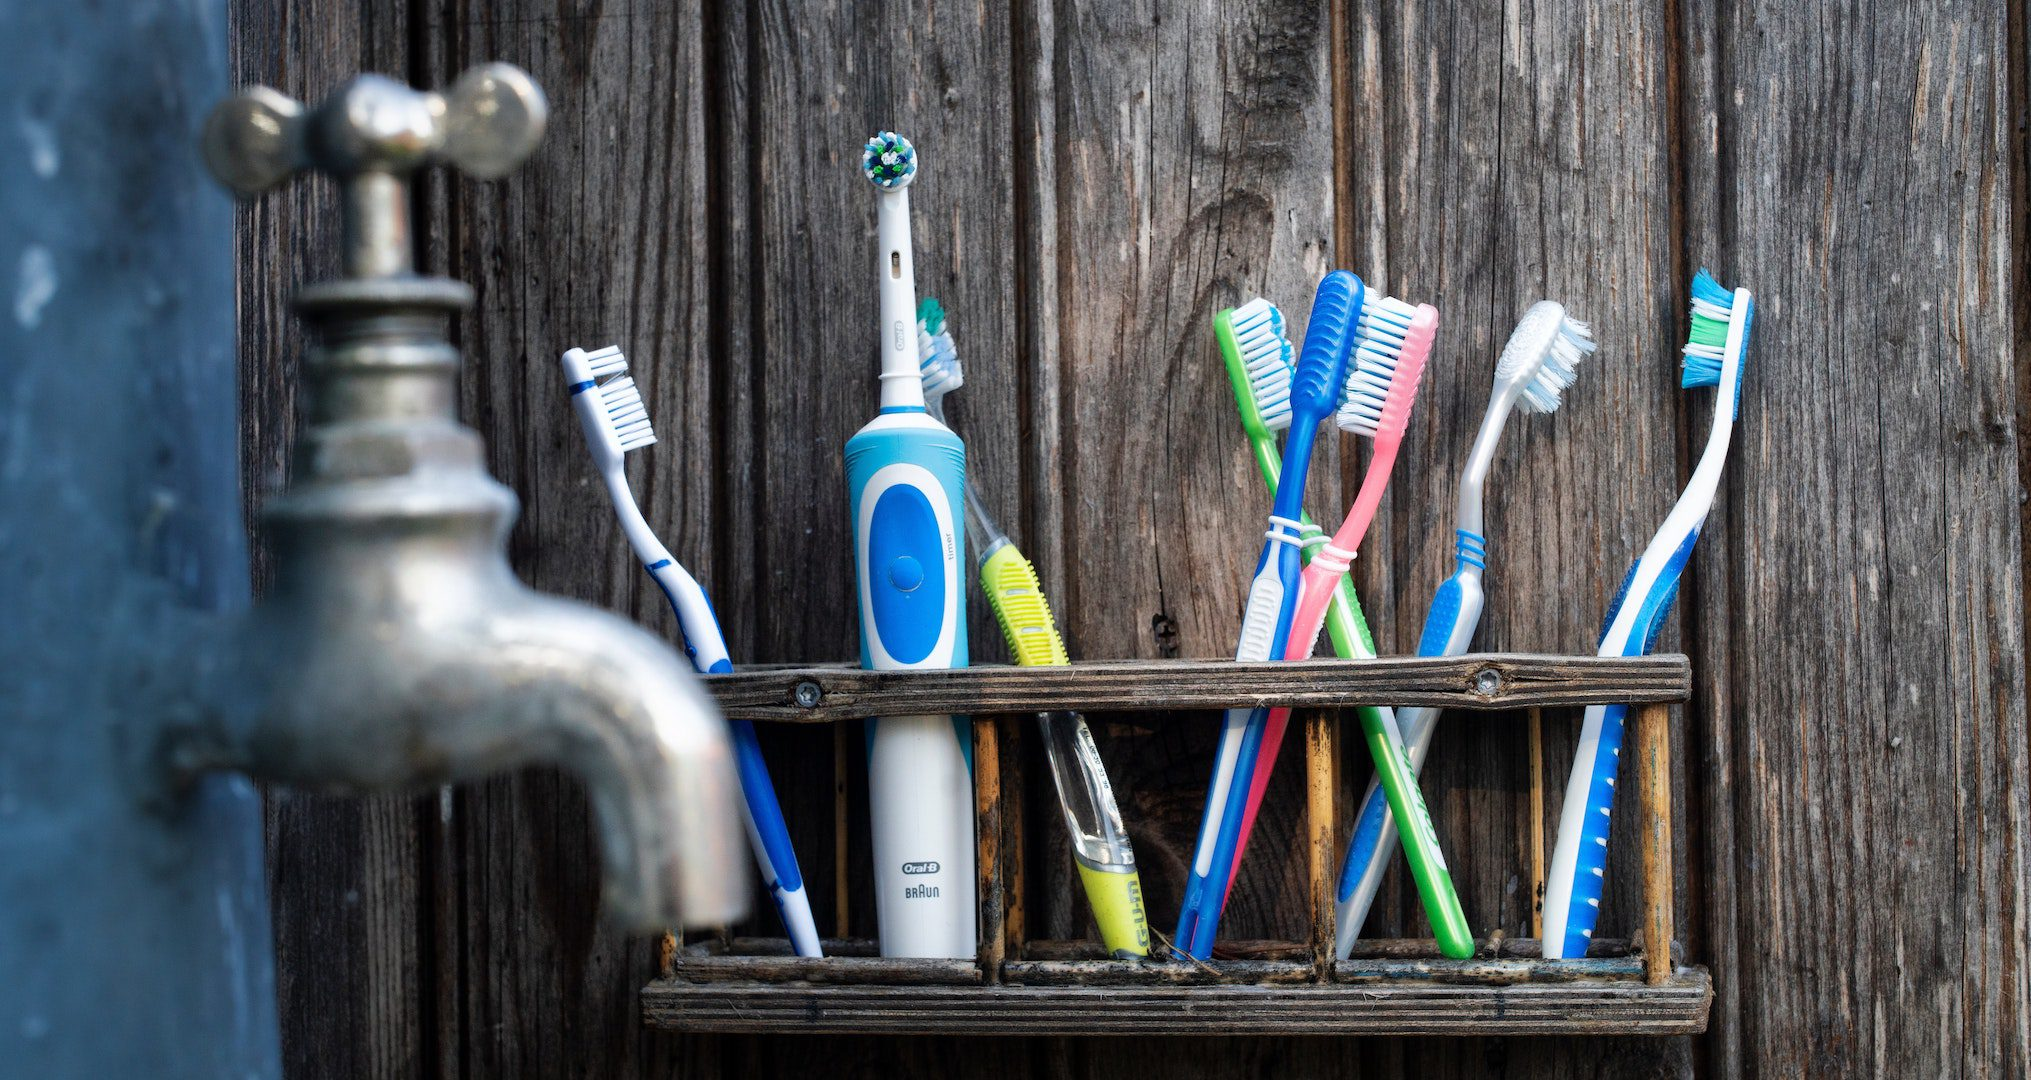 assortment of toothbrushes on a shelf